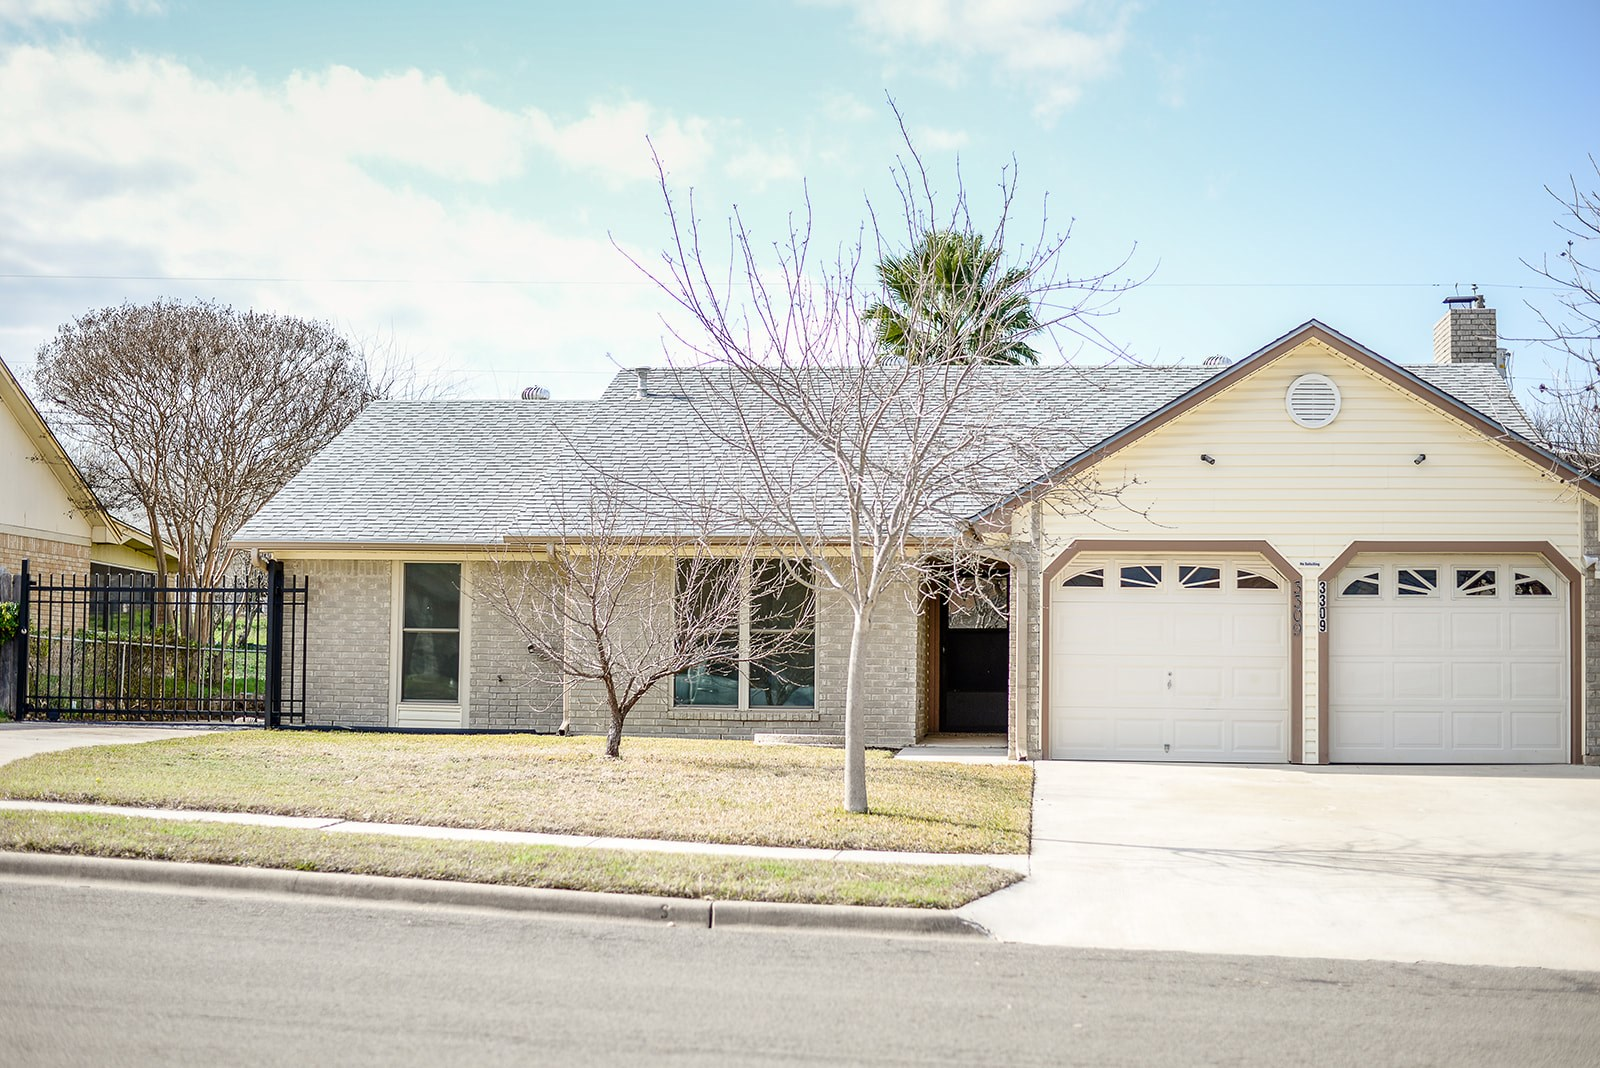 3 Bedroom 2 Bath For Sale Killeen Texas $130k